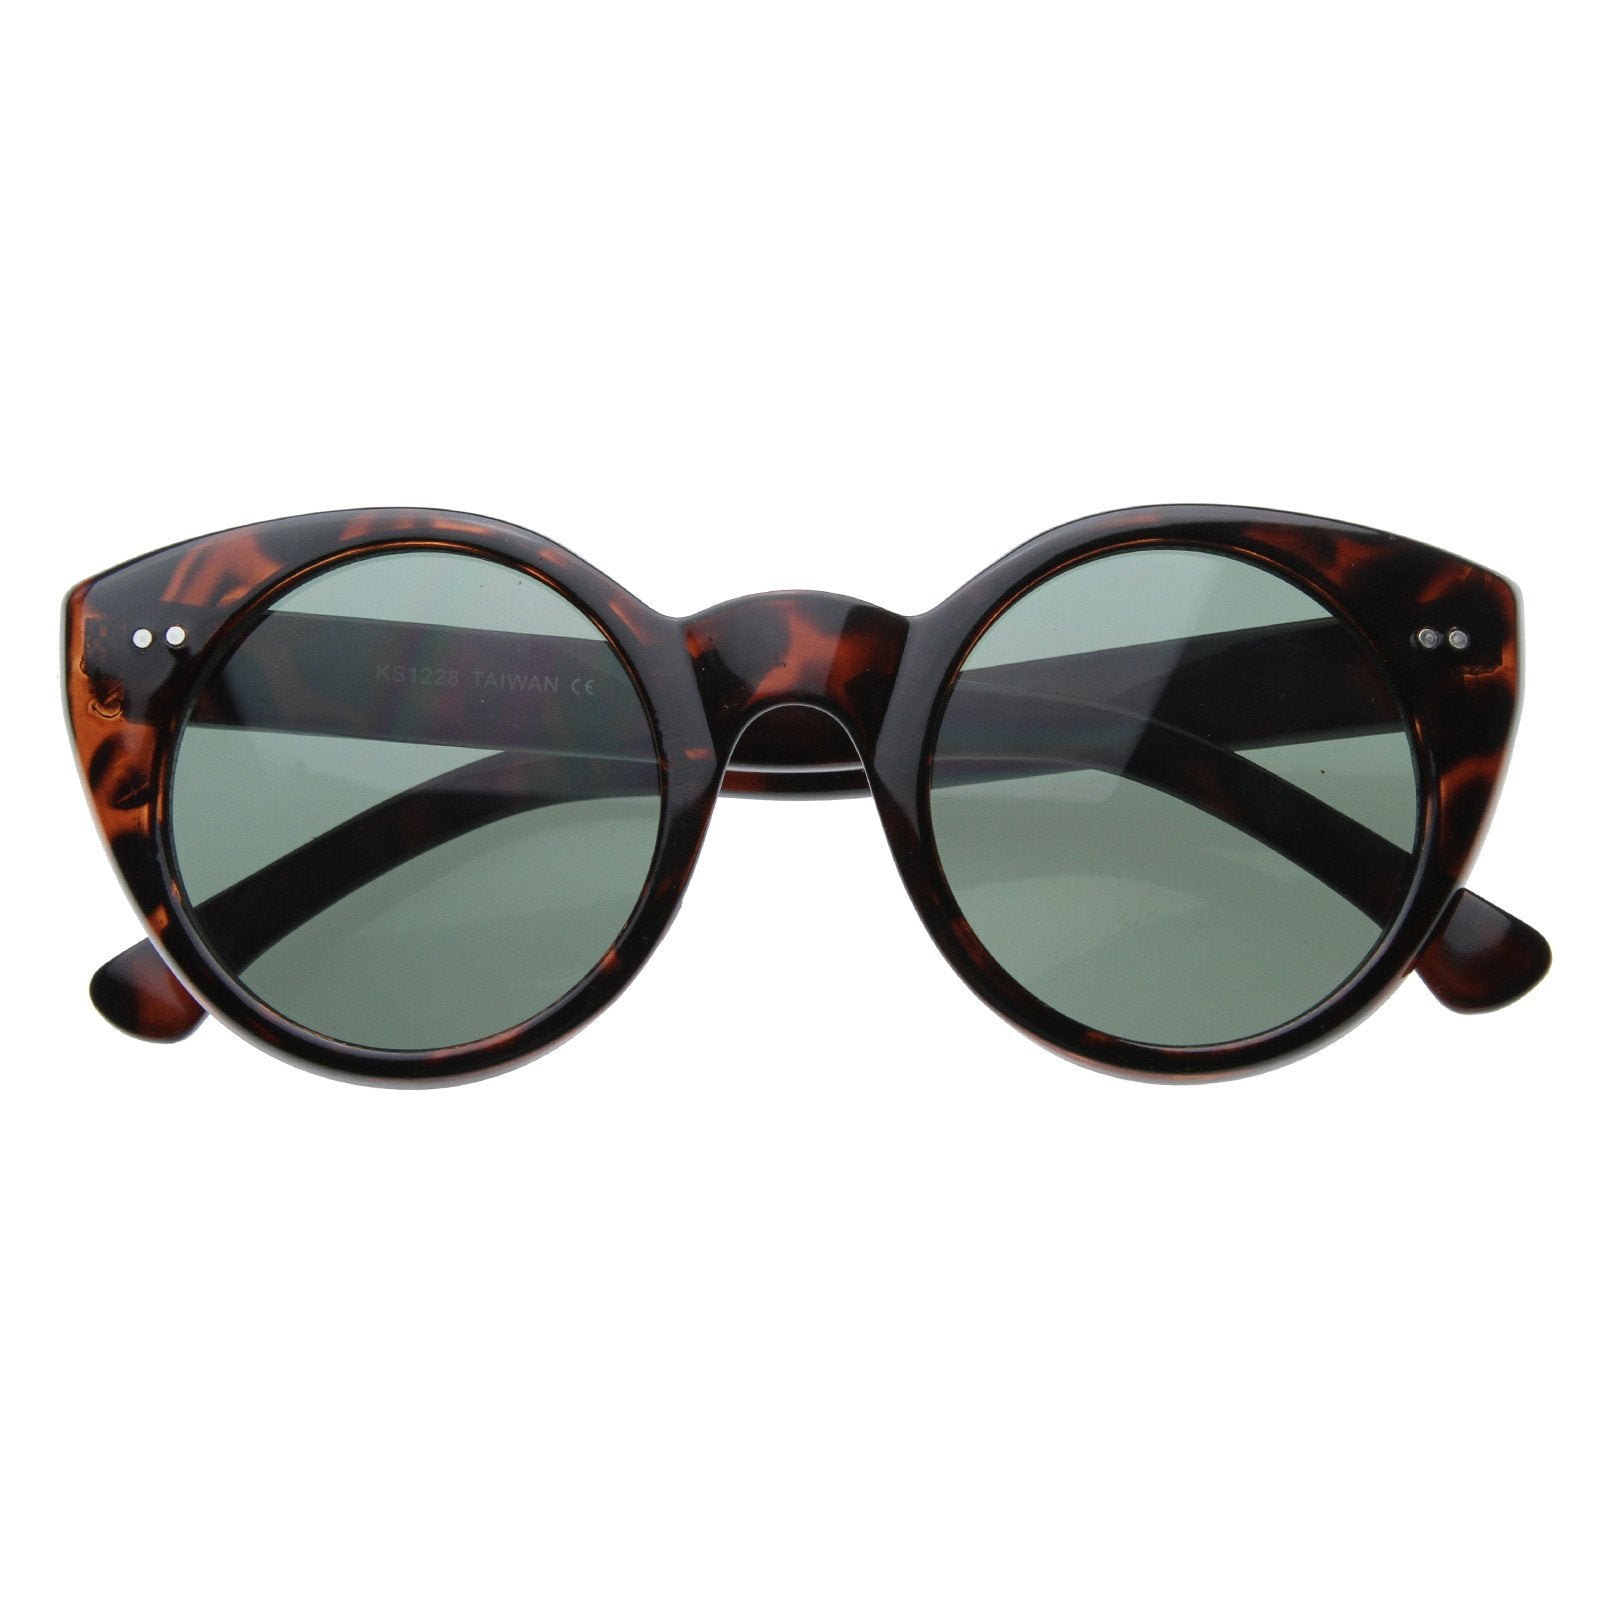 73ea2921543 Trendy Hipster Dapper Indie Sunglasses Tagged